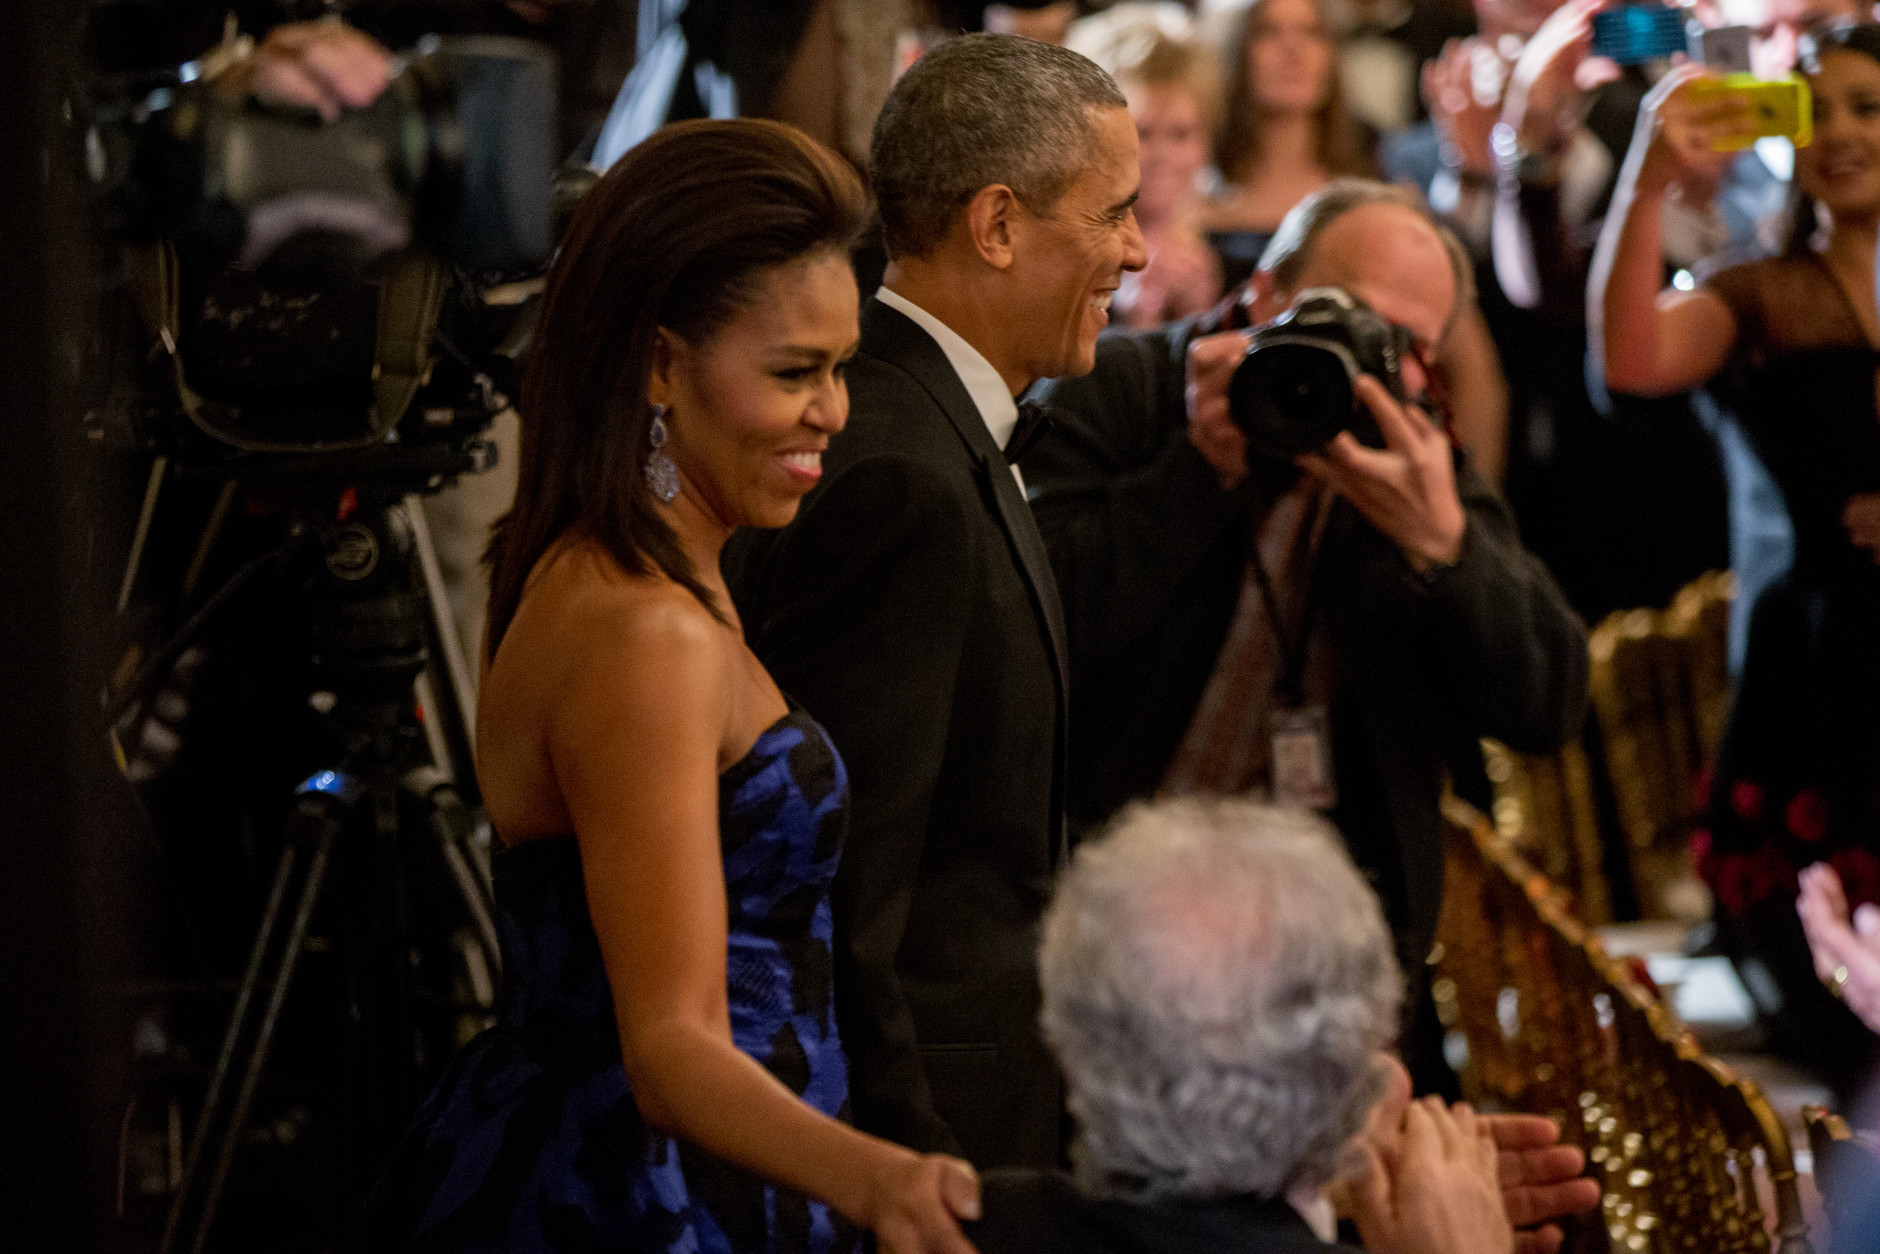 President Barack Obama and first lady Michelle Obama arrive at the 2015 Kennedy Center Honors reception in the East Room of the White House, Sunday, Dec. 6, 2015, in Washington. The 2015 Kennedy Center Honors Honorees are singer-songwriter Carole King, filmmaker George Lucas, actress and singer Rita Moreno, conductor Seiji Ozawa, and actress Cicely Tyson. (AP Photo/Andrew Harnik)